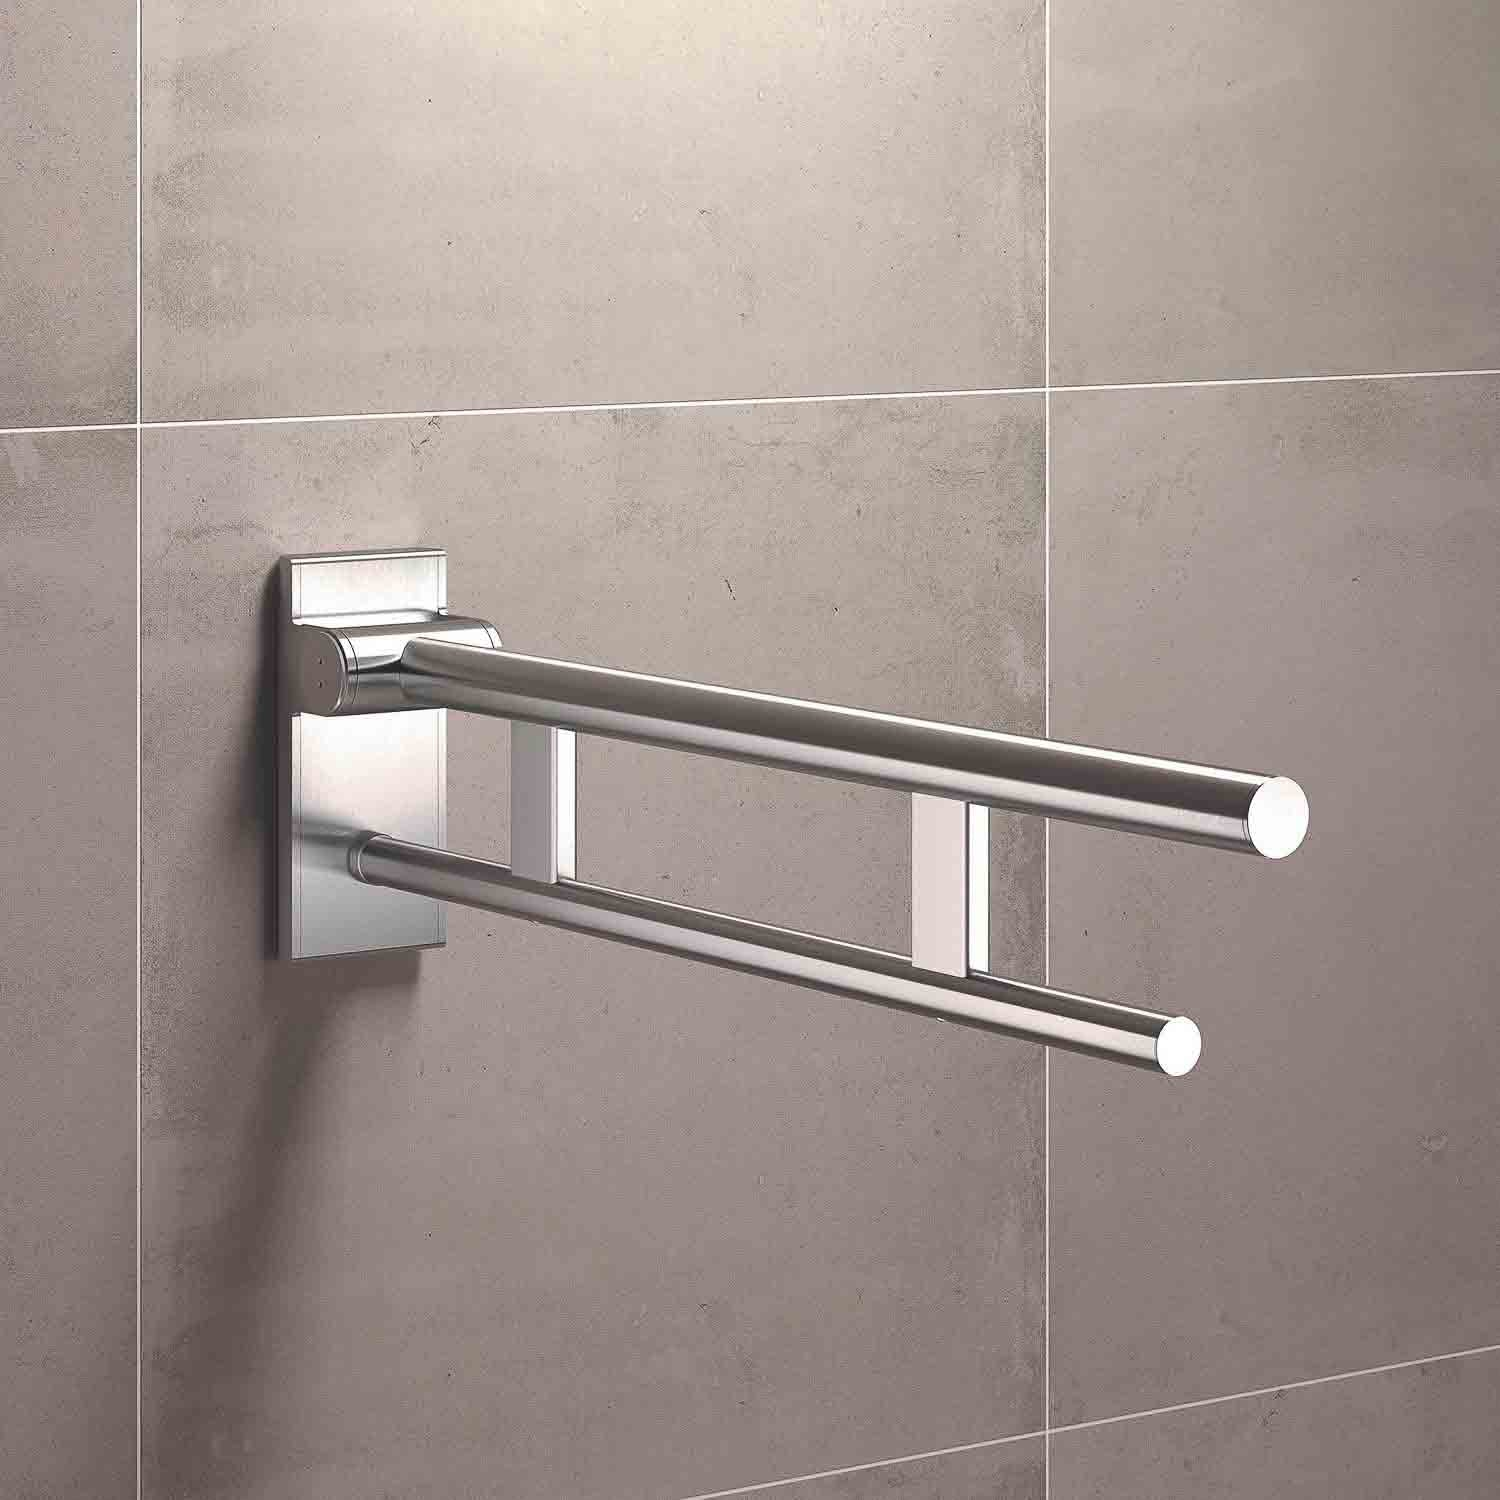 850mm Freestyle Removable Hinged Grab Rail with a satin steel finish lifestyle image